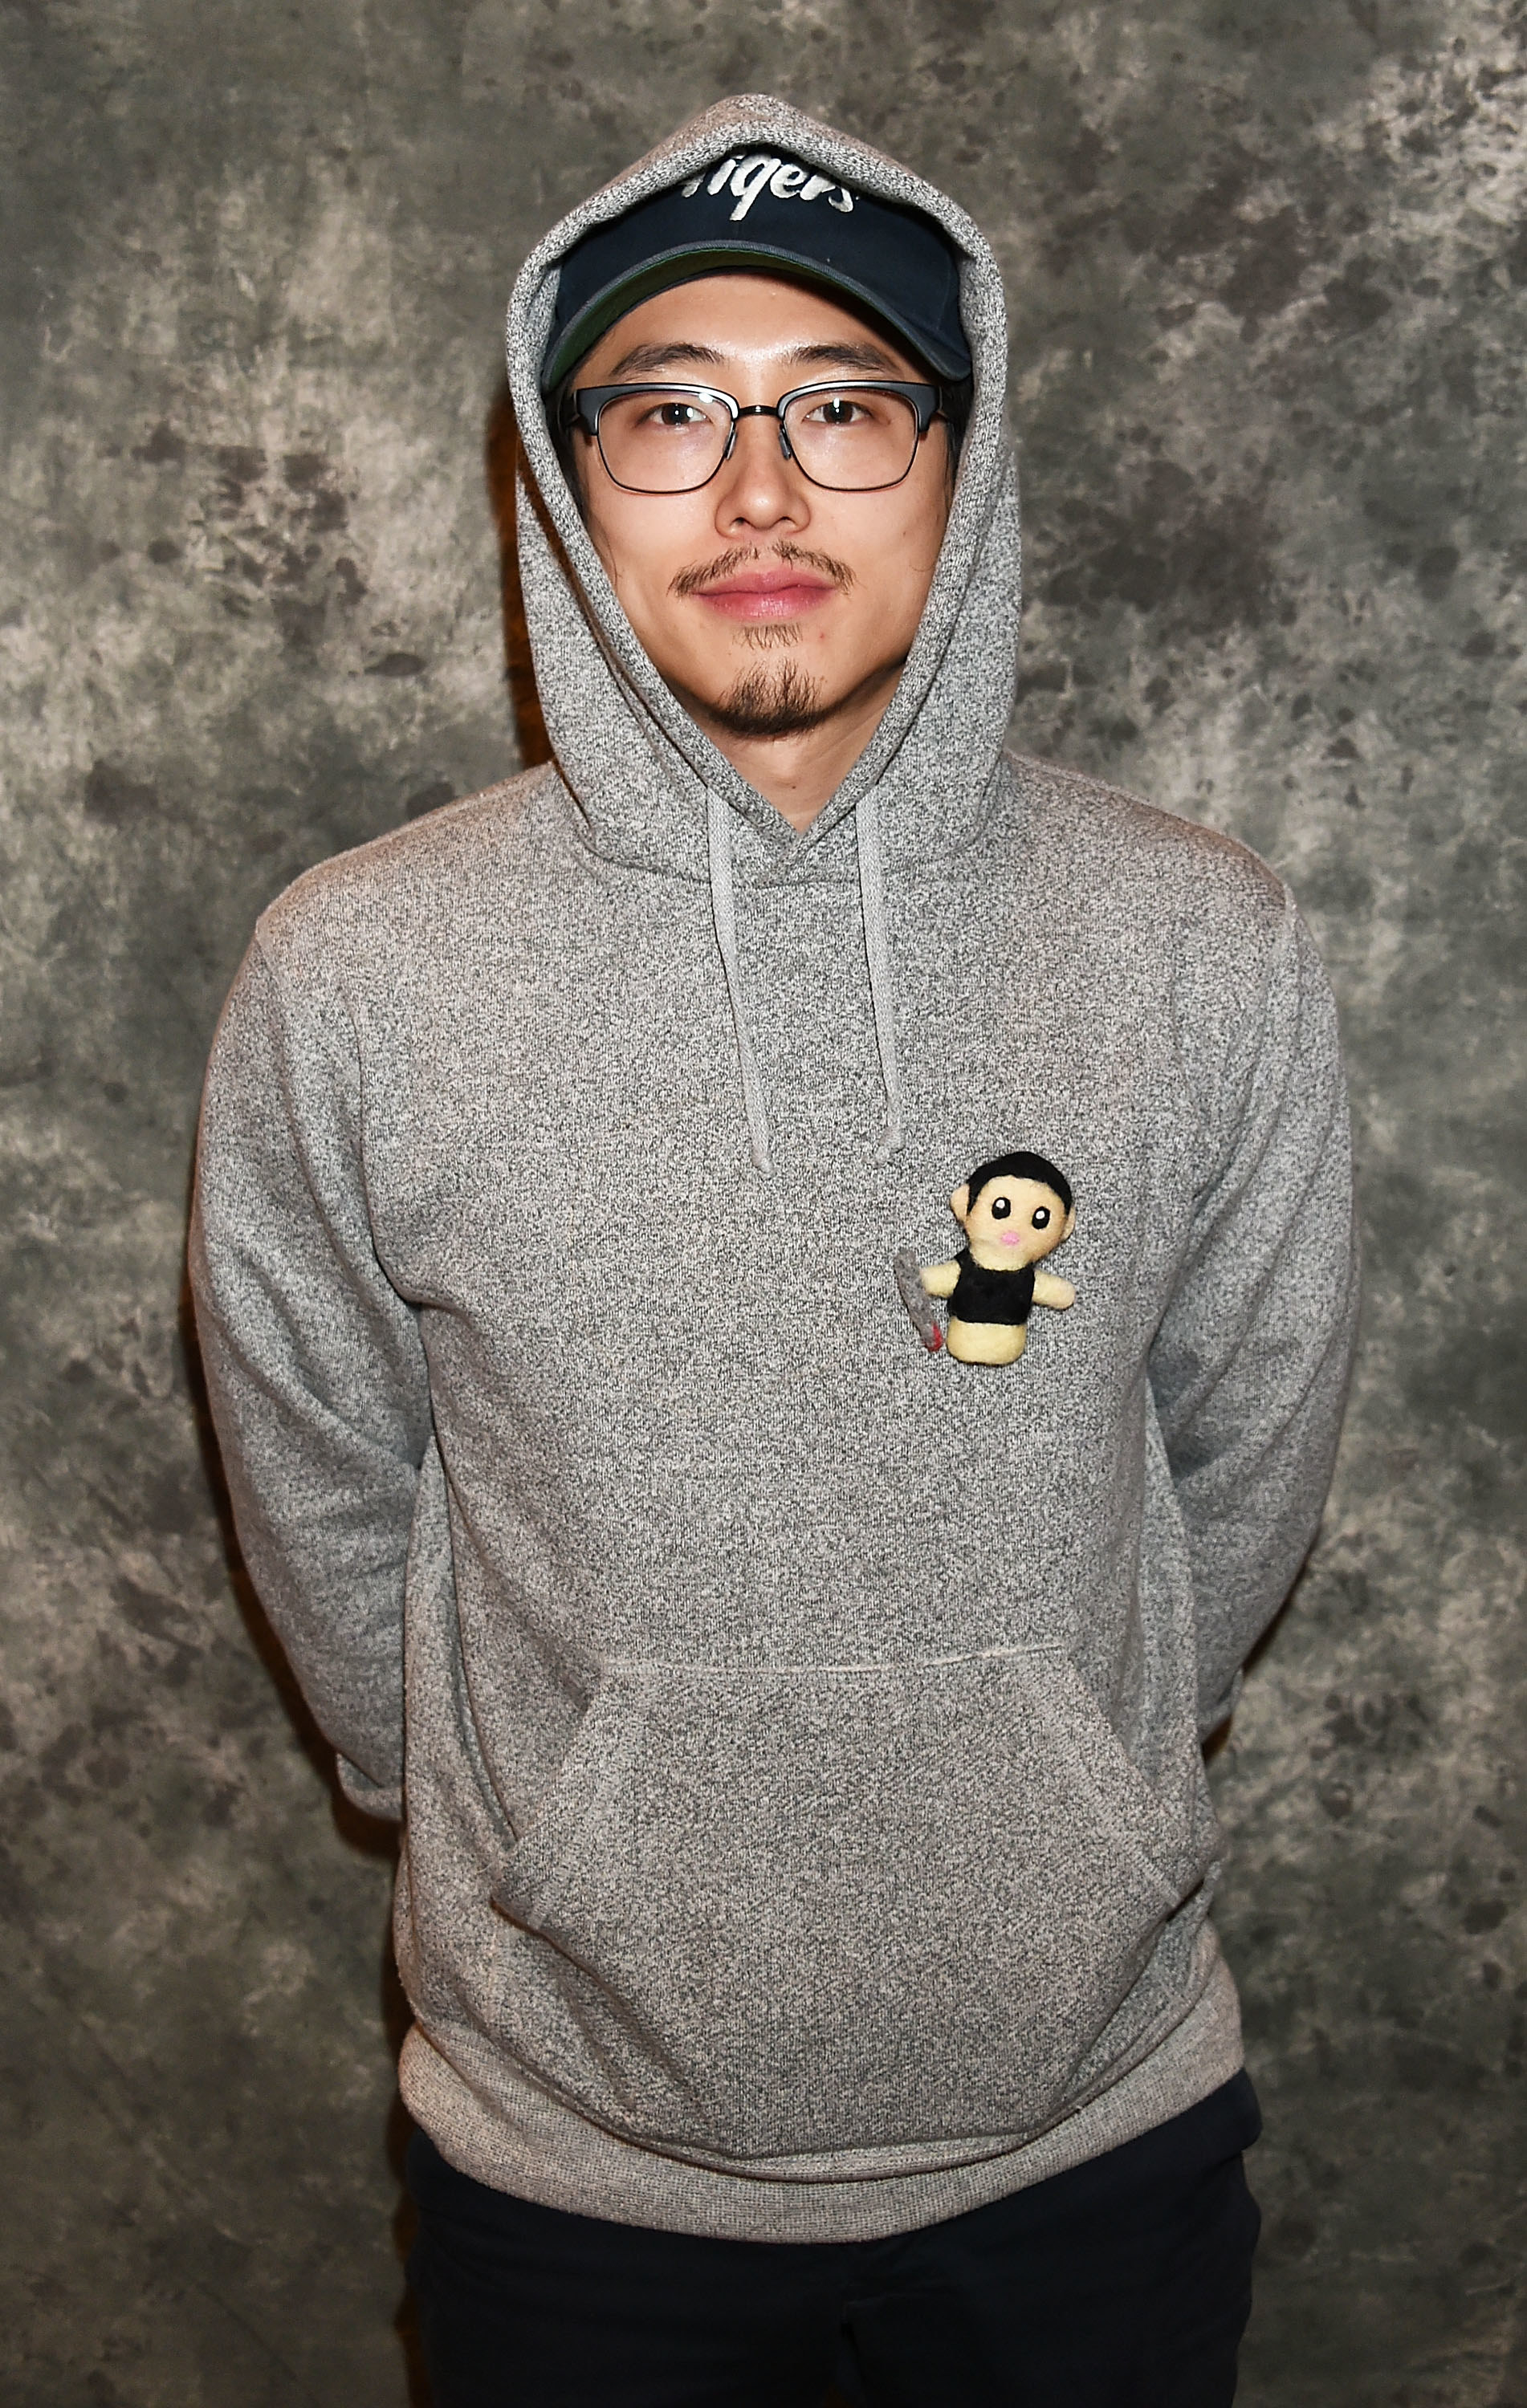 A bespectacled Steven  in a gray hoodie and baseball cap